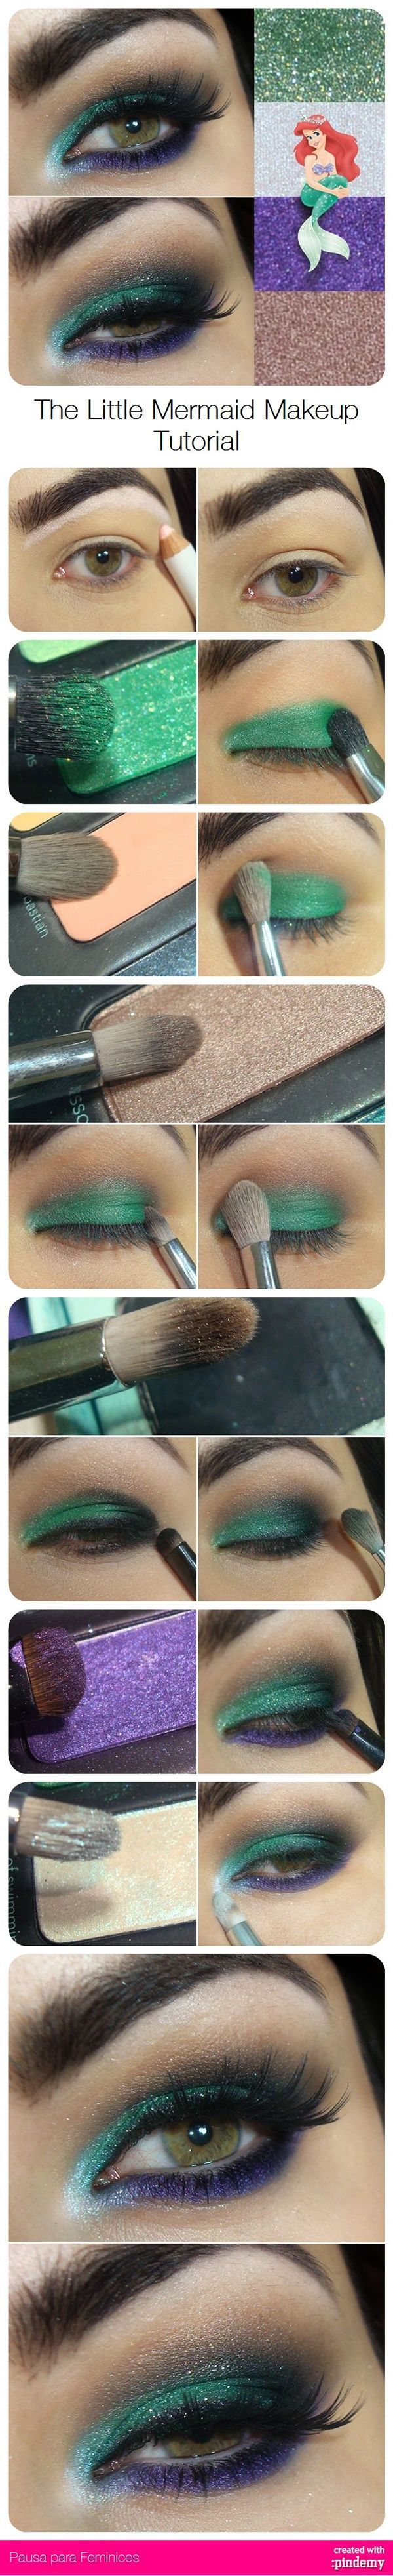 Disney inspired :) Get all the makeup you need possible here: www.youniqueproducts.com/JeannetteGreen